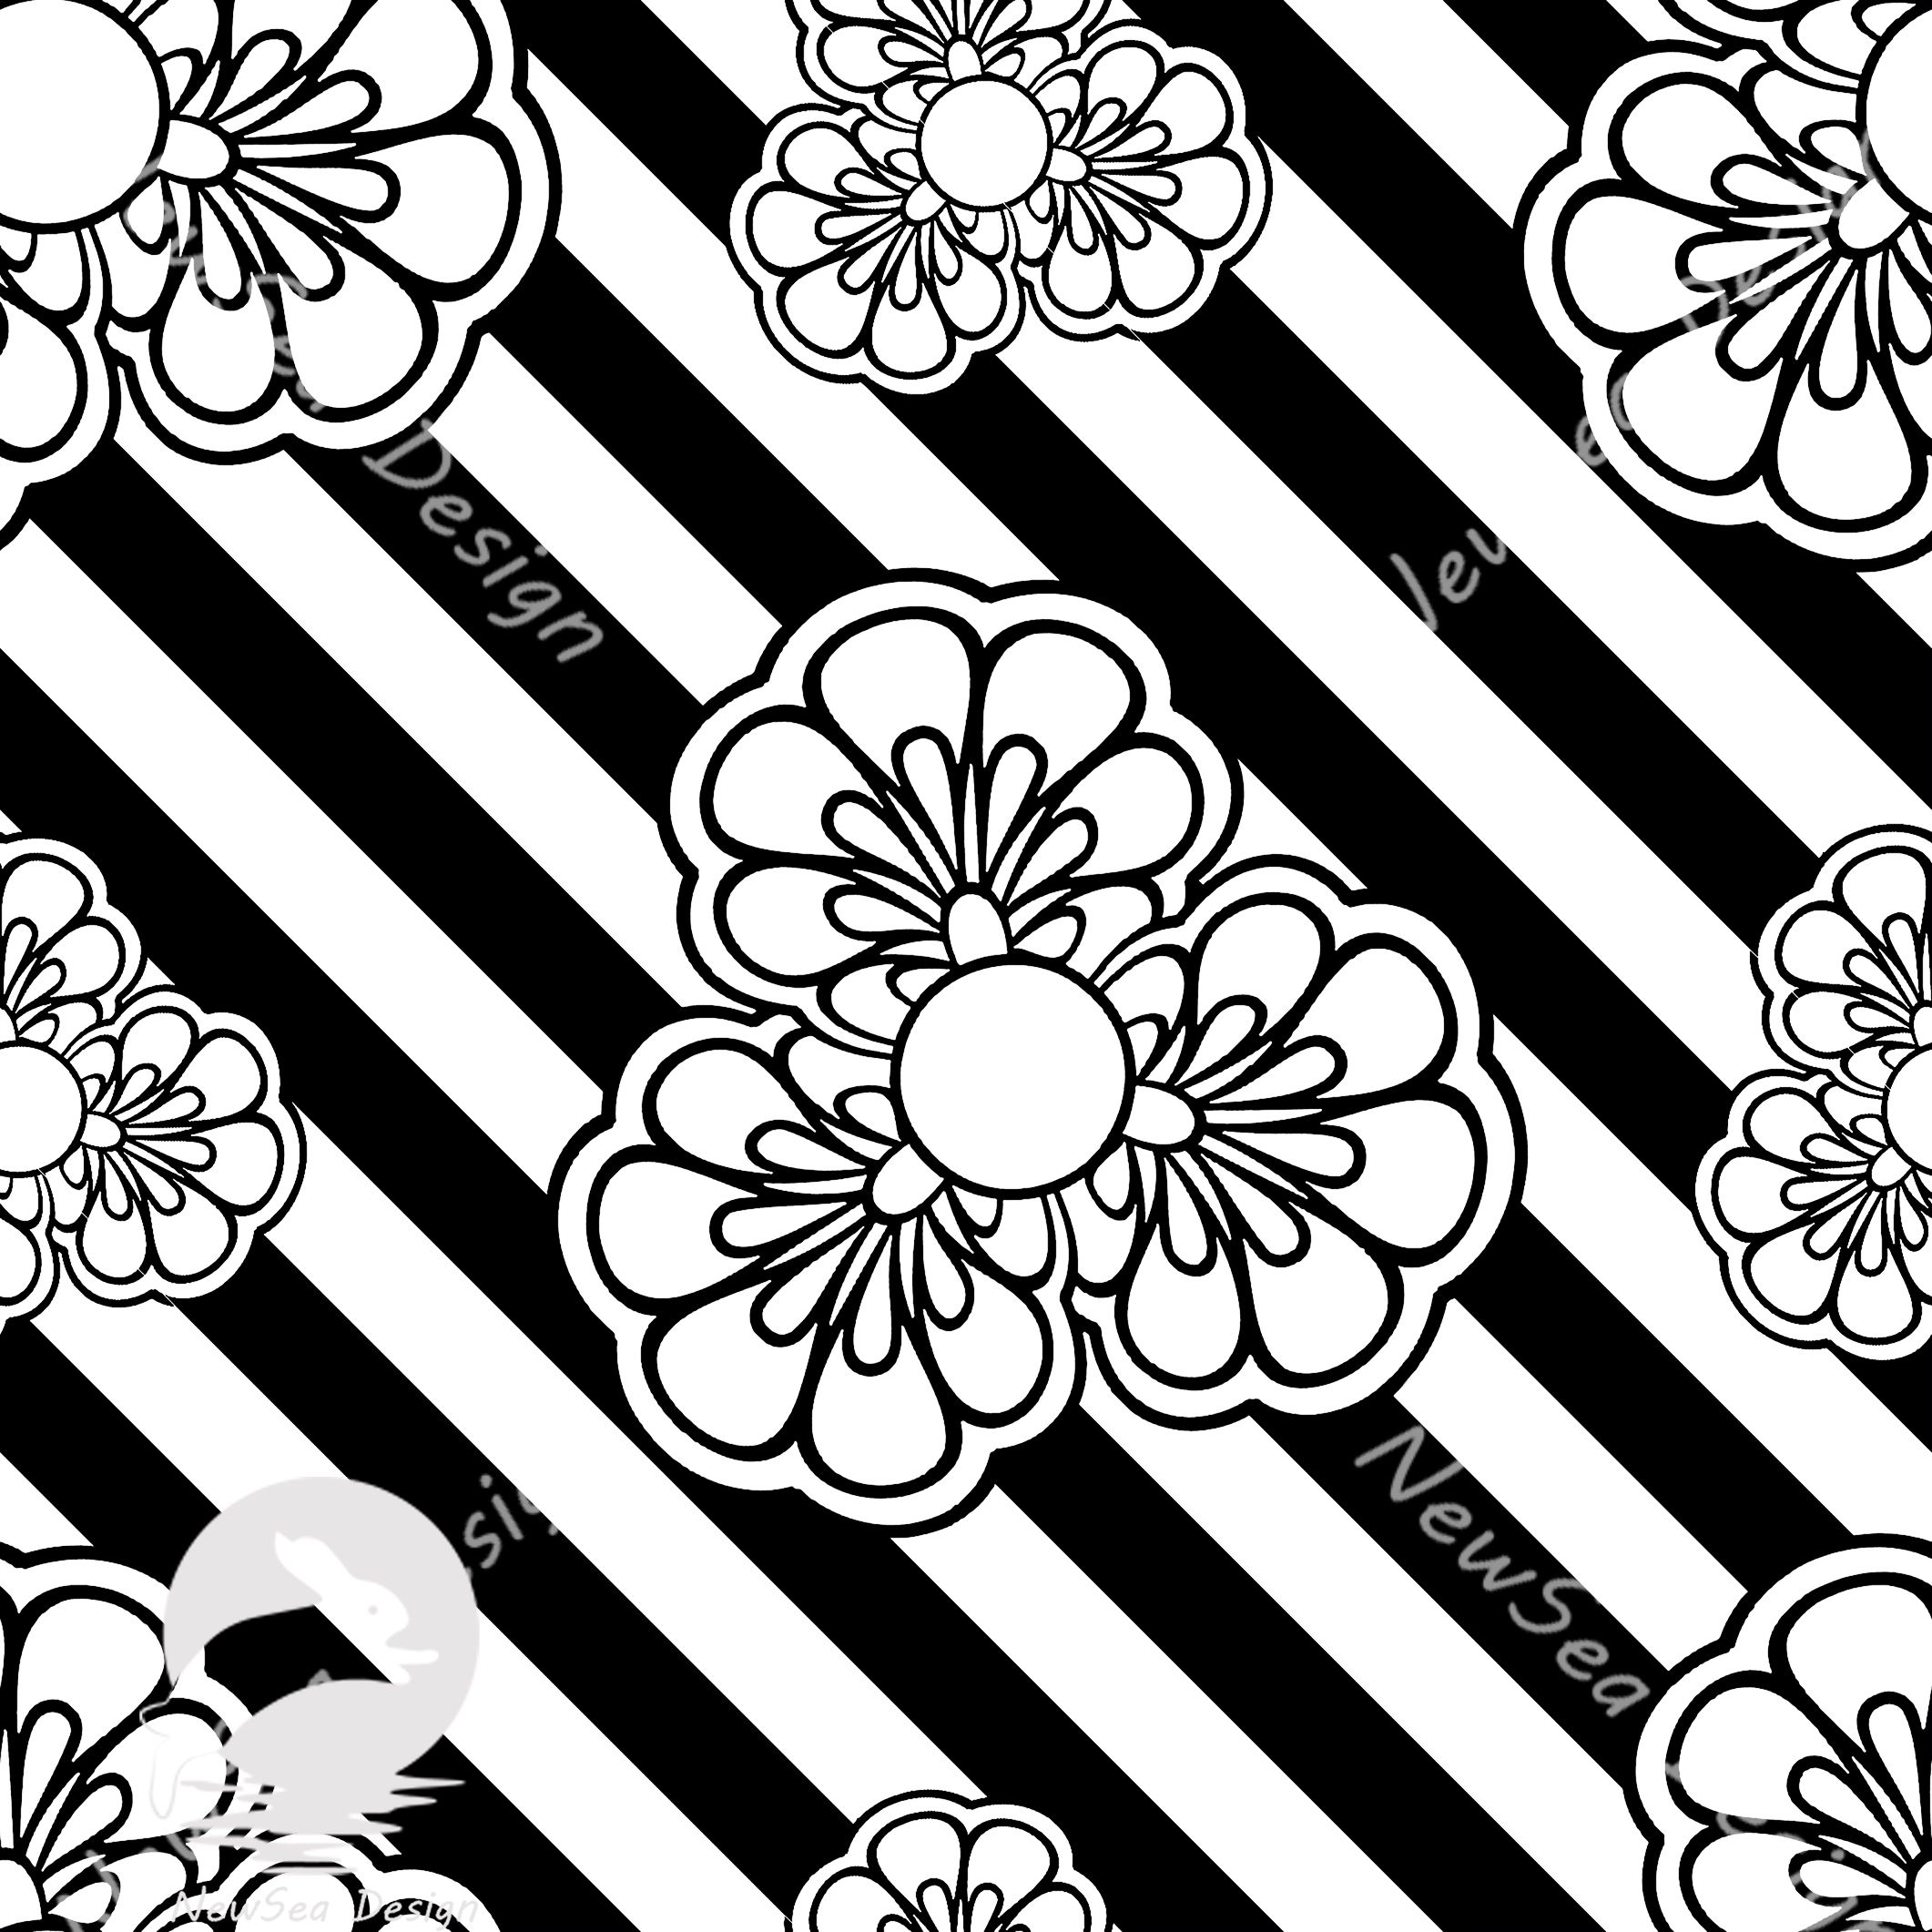 Black and white pattern  patternbank.com/NewSeaDesign  #illustrationart #illustrationbest #pattern #patterndesign #patterndesigners #repeatpattern #illustration #surfacepattern #patternprint #patternobserver #patternbank #patterncurator #patternoftheday #patterndesigners #textil